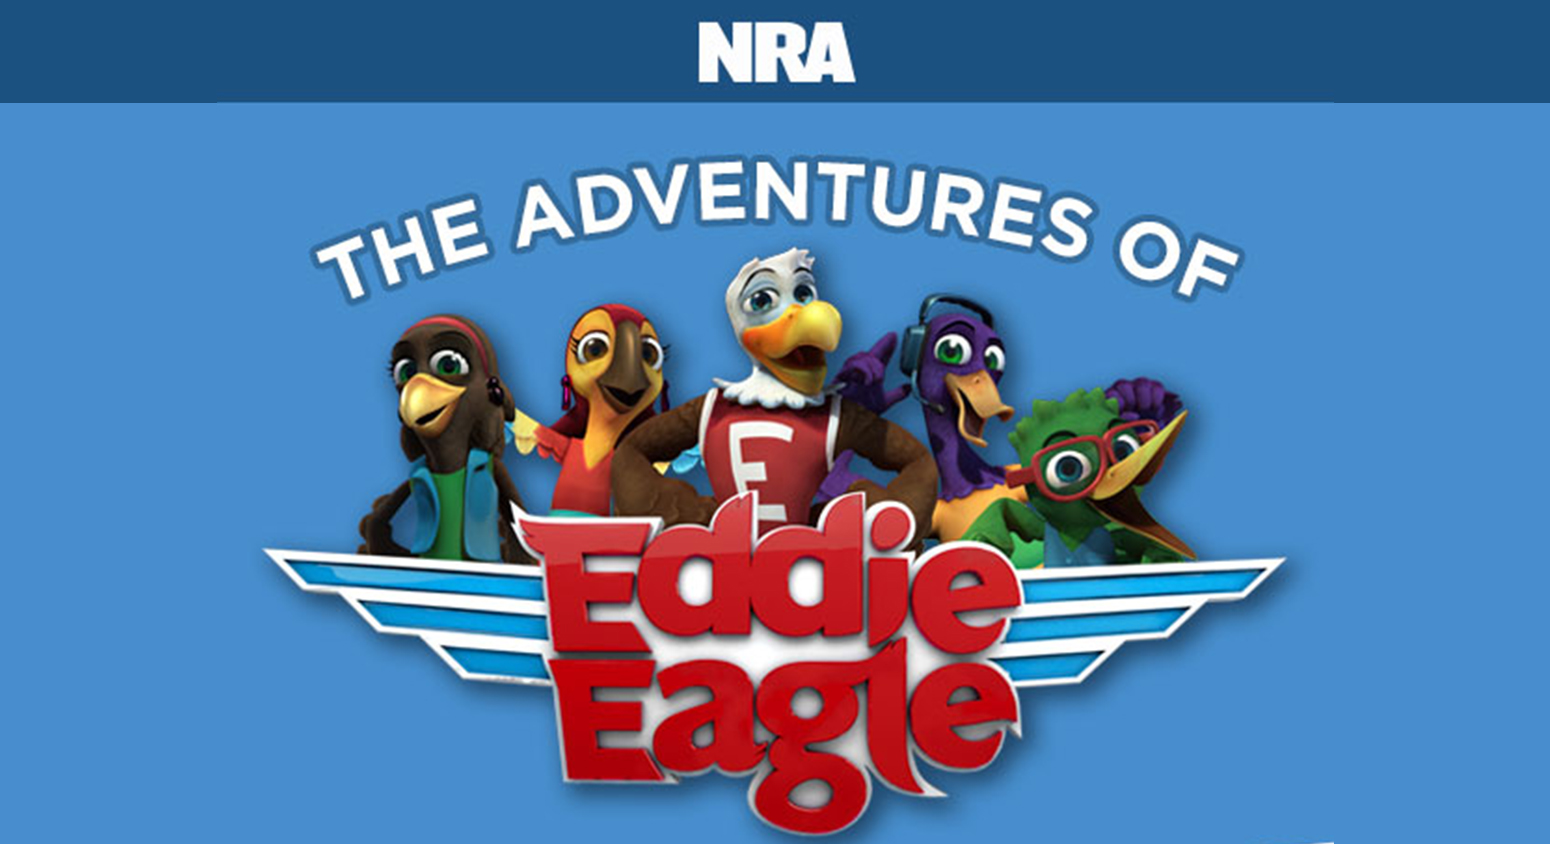 INFOGRAPHIC: The Adventures of Eddie Eagle